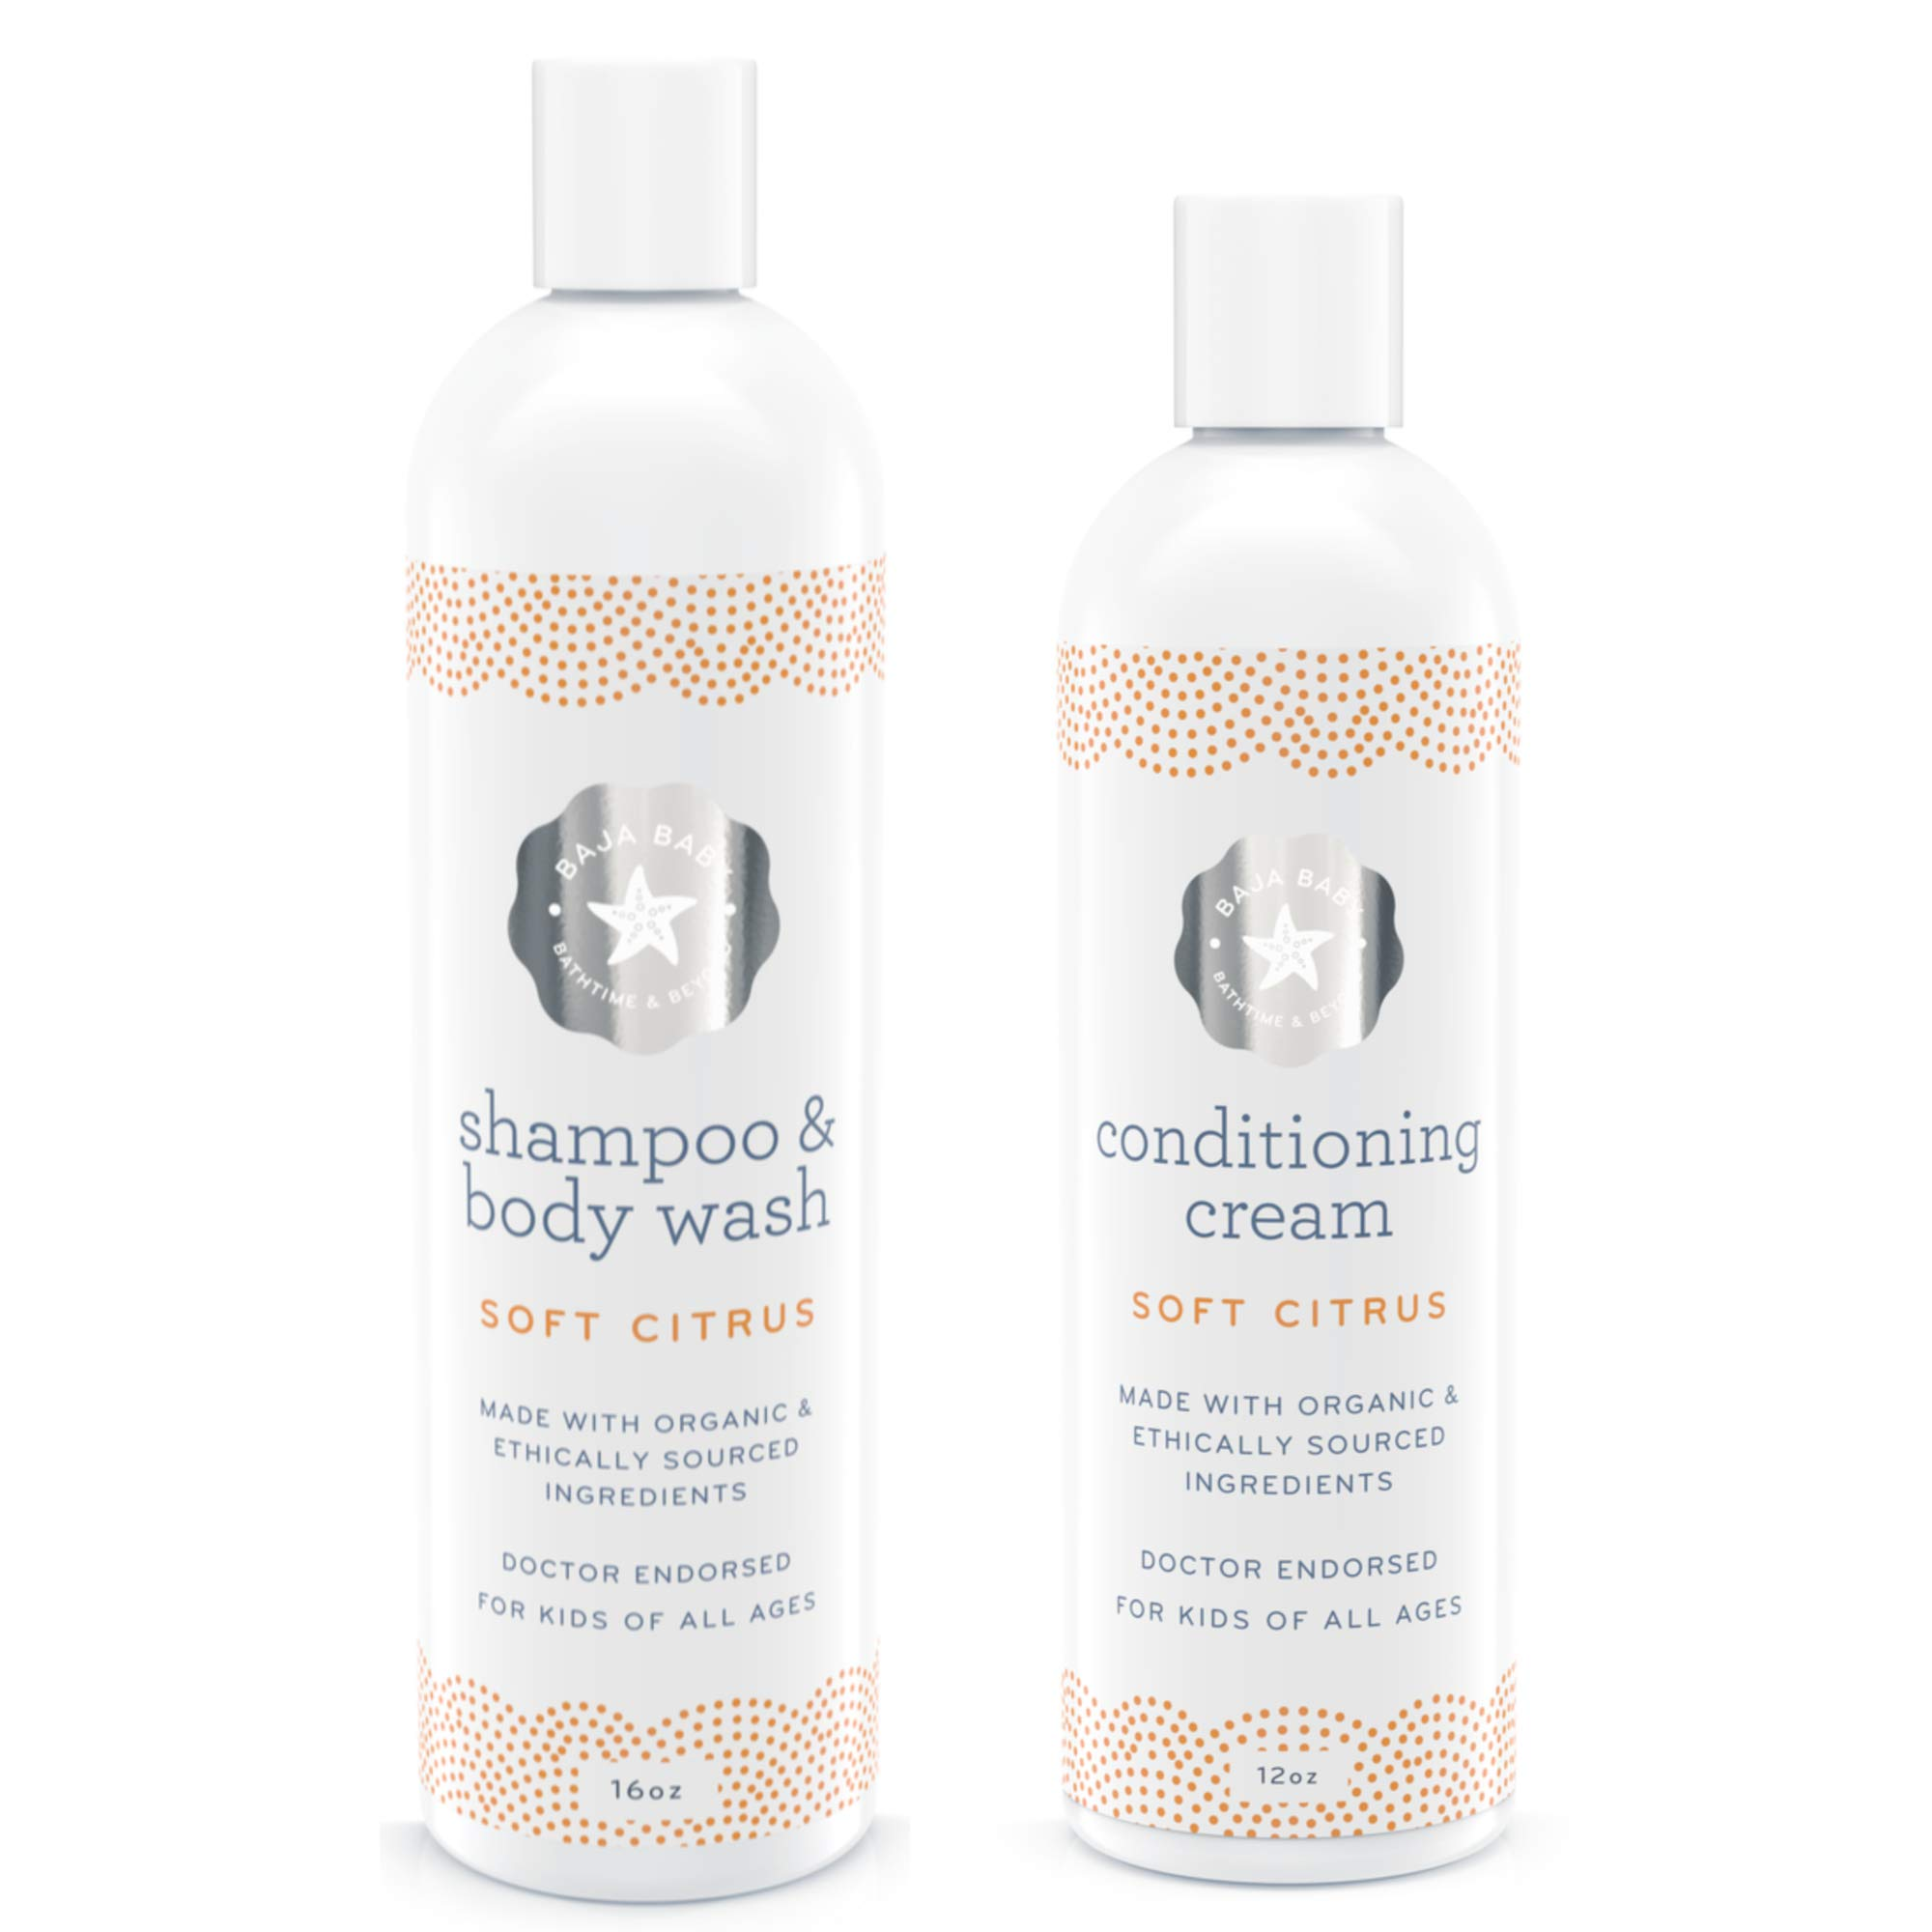 Baja Baby Set Of 2-10% Off - Organic Citrus Shampoo & Citrus Conditioner - EWG Verified - Family Size - No Sulfates, Parabens or Phosphates - Pure Hair & Skin Care For Kids by Baja Baby